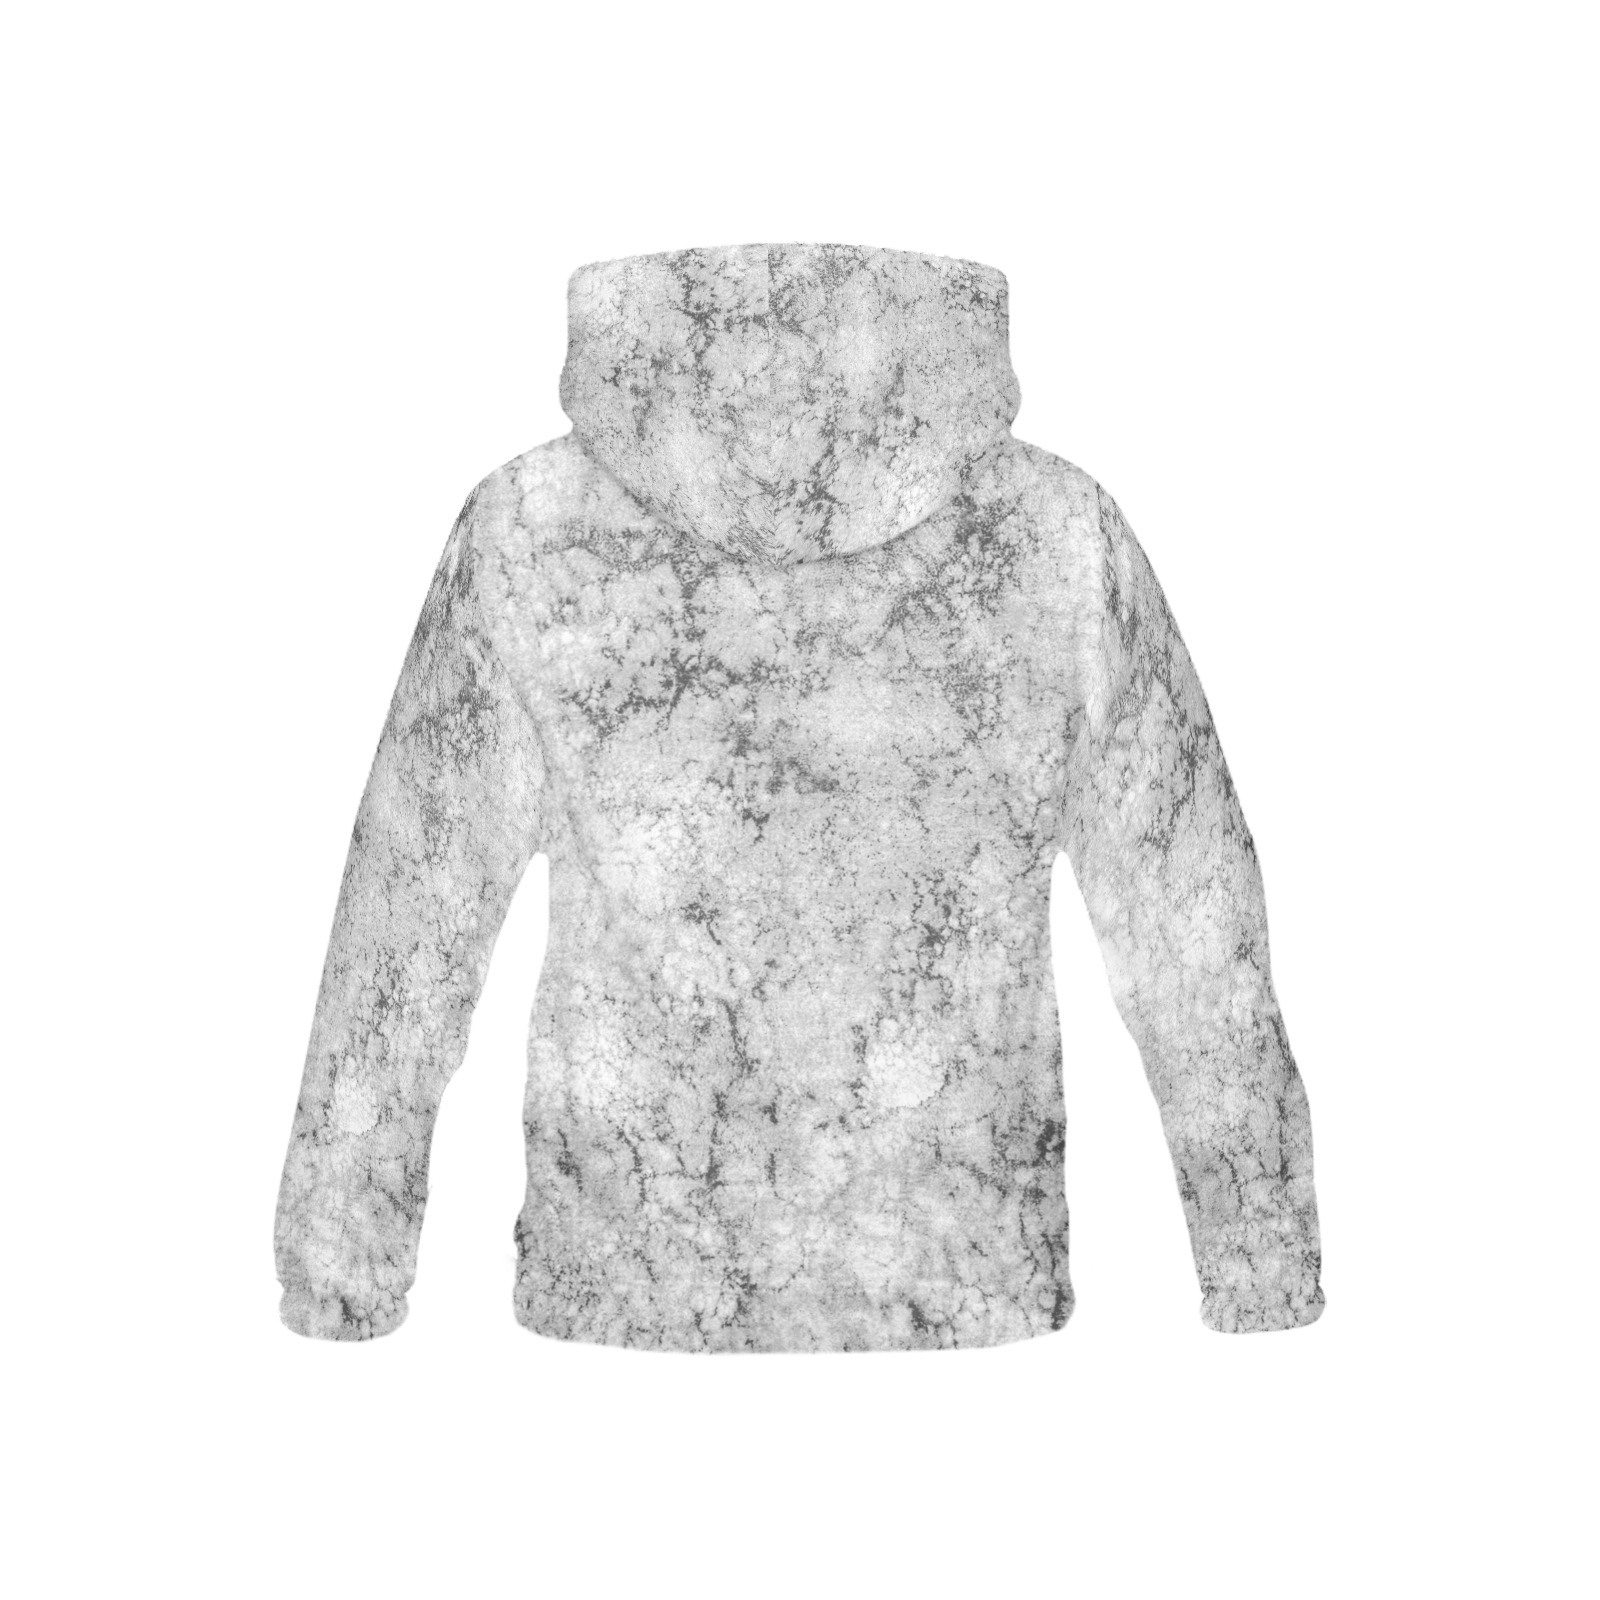 Textured gray All Over Print Hoodie for Kid (USA Size) (Model H13)